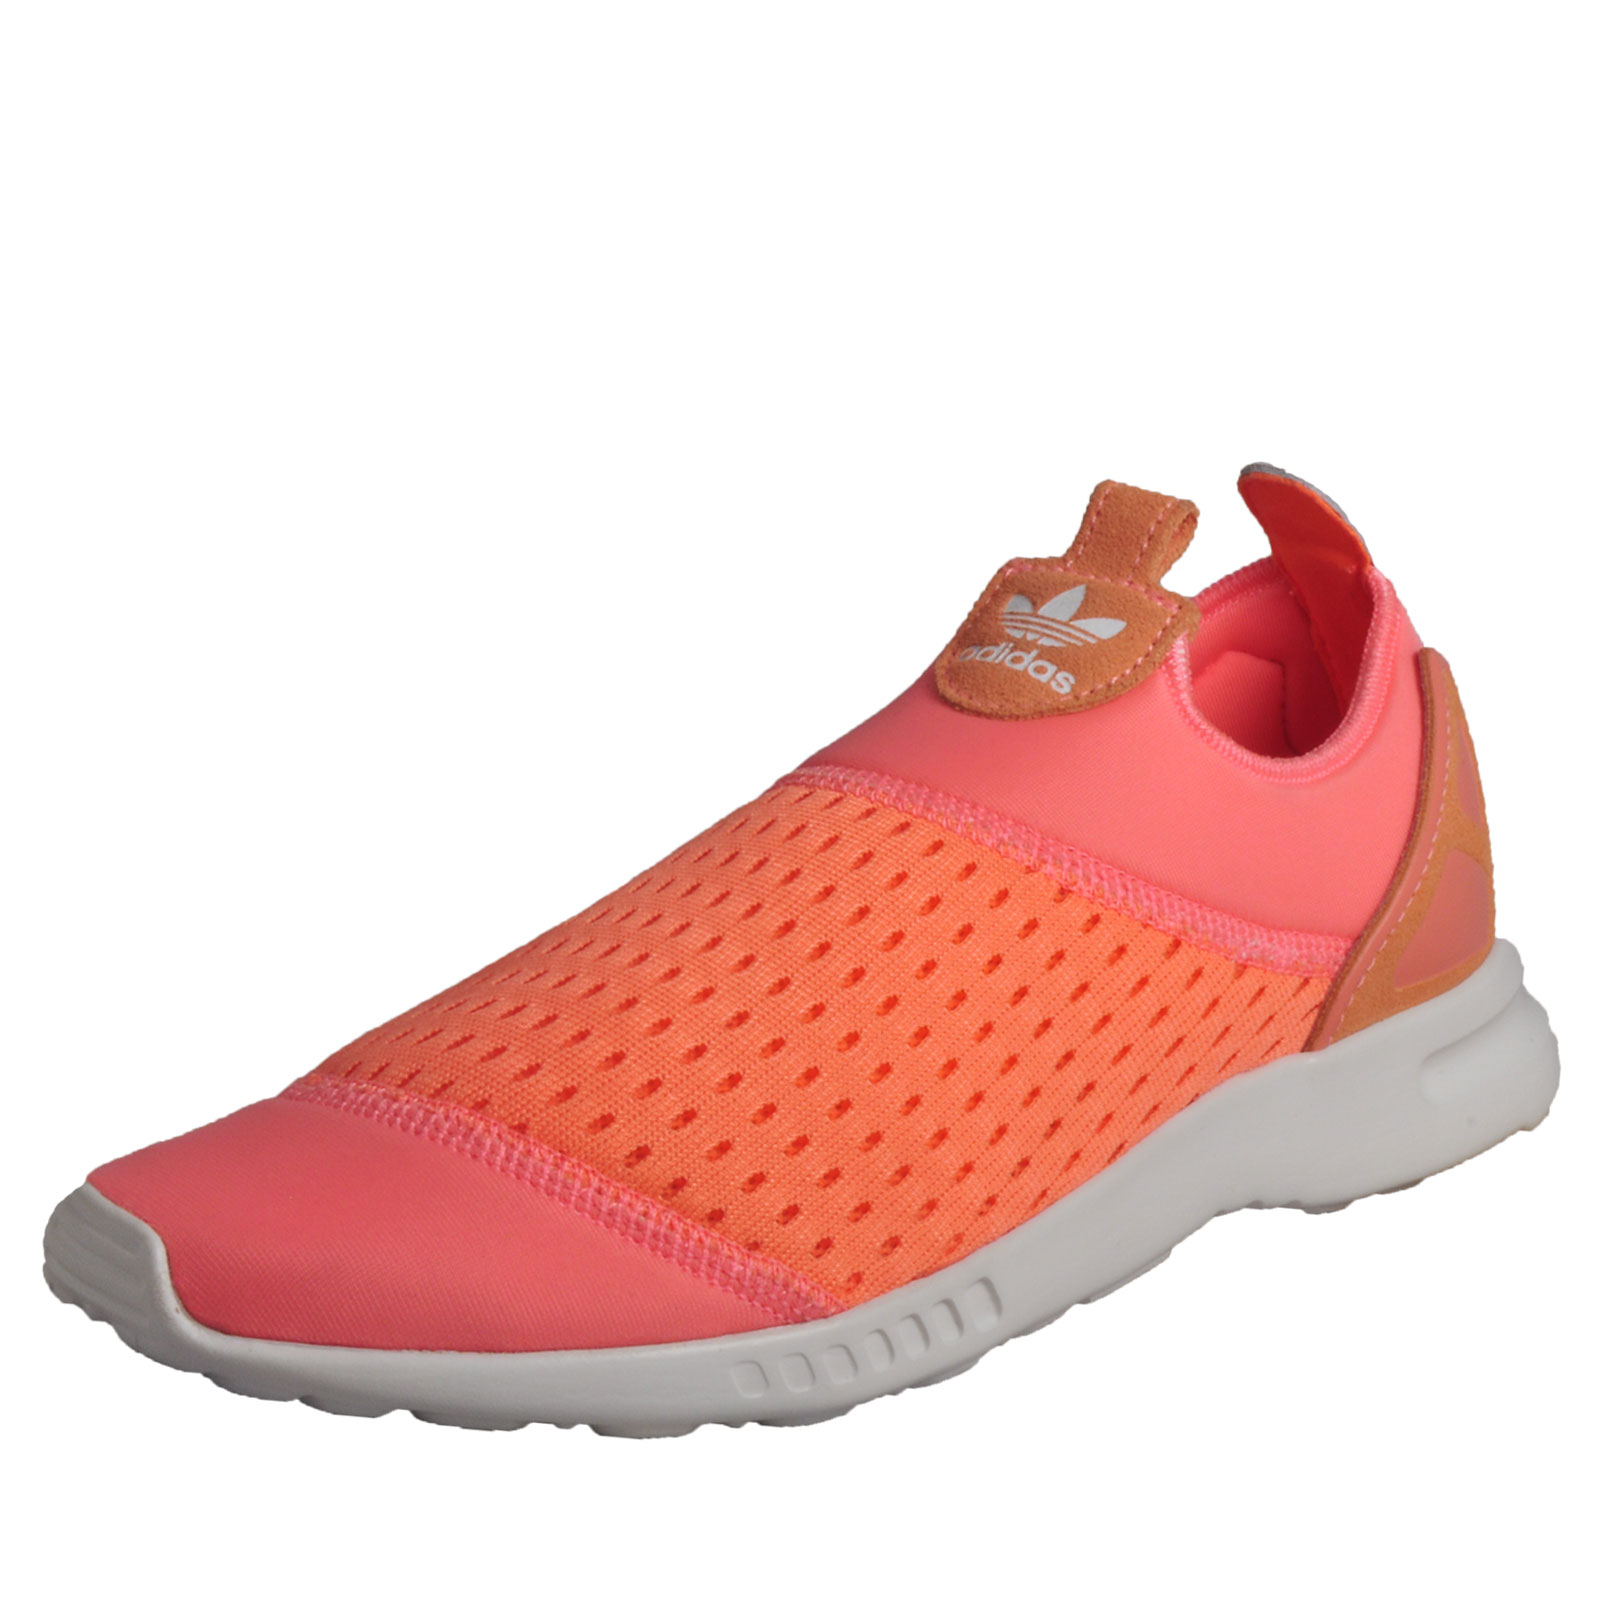 new styles a660e b8ebd Details about Adidas Originals ZX Flux Adv Smooth Slip-On Womens Fitness  Gym Trainers Pink